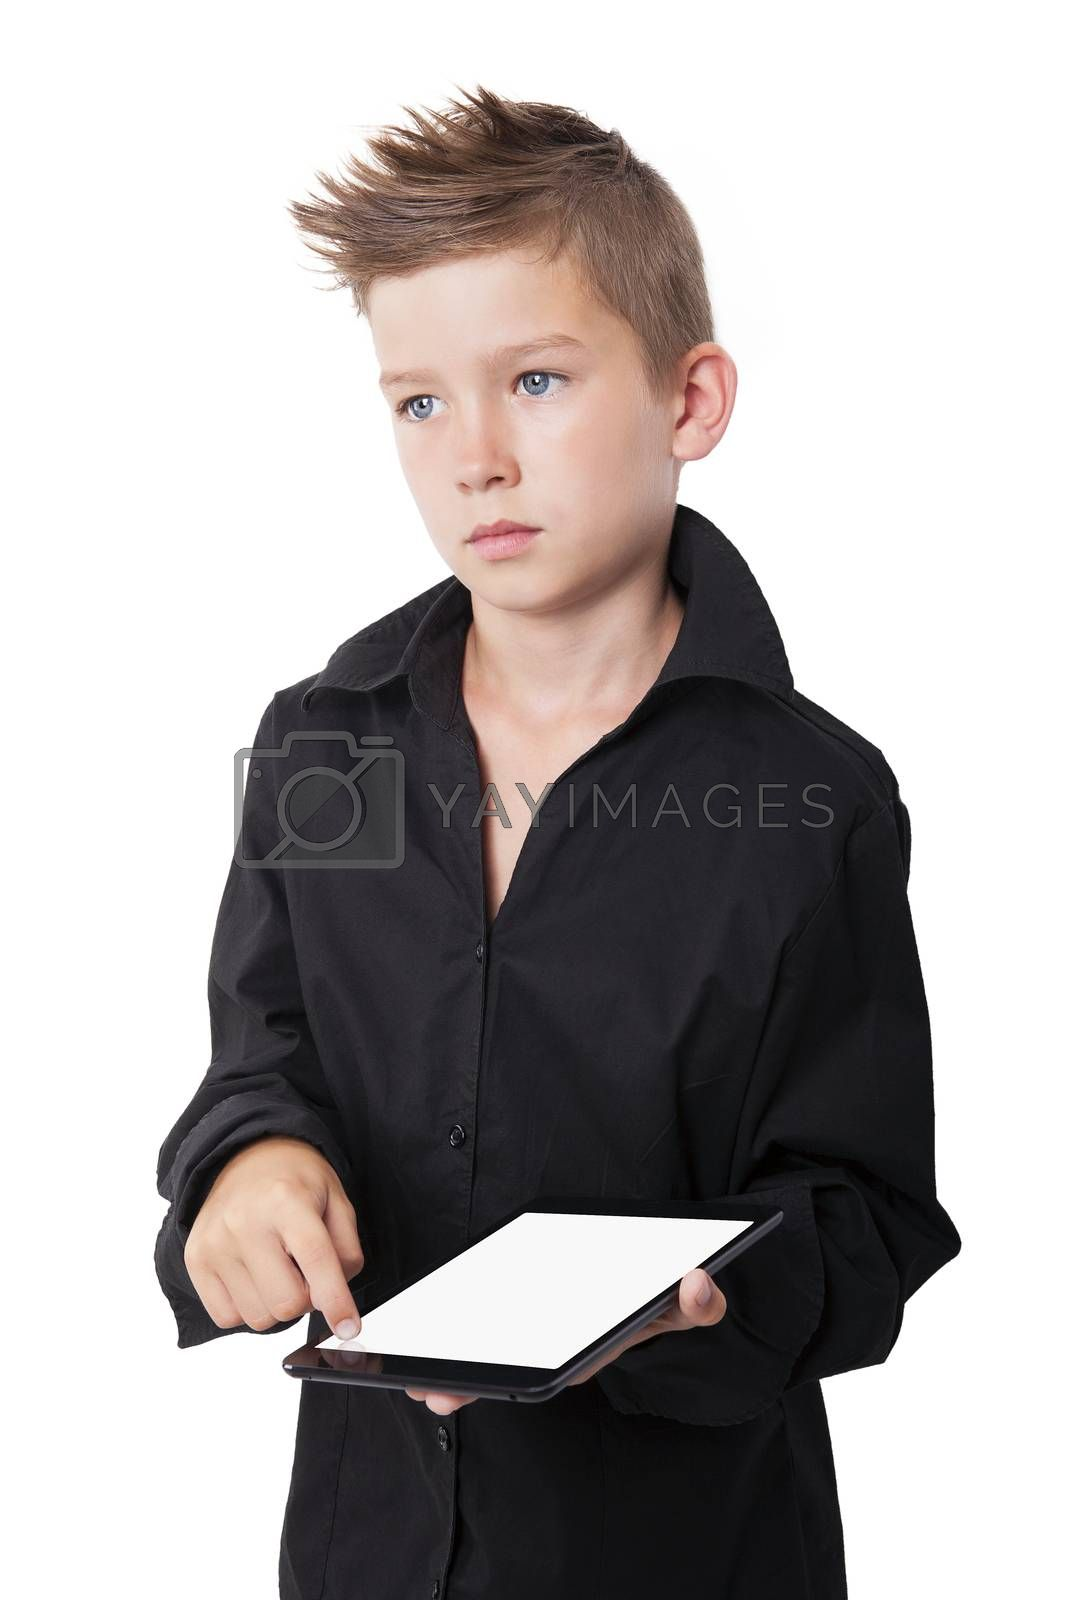 Charming boy holding and touching tablet screen with finger isolated on white background.